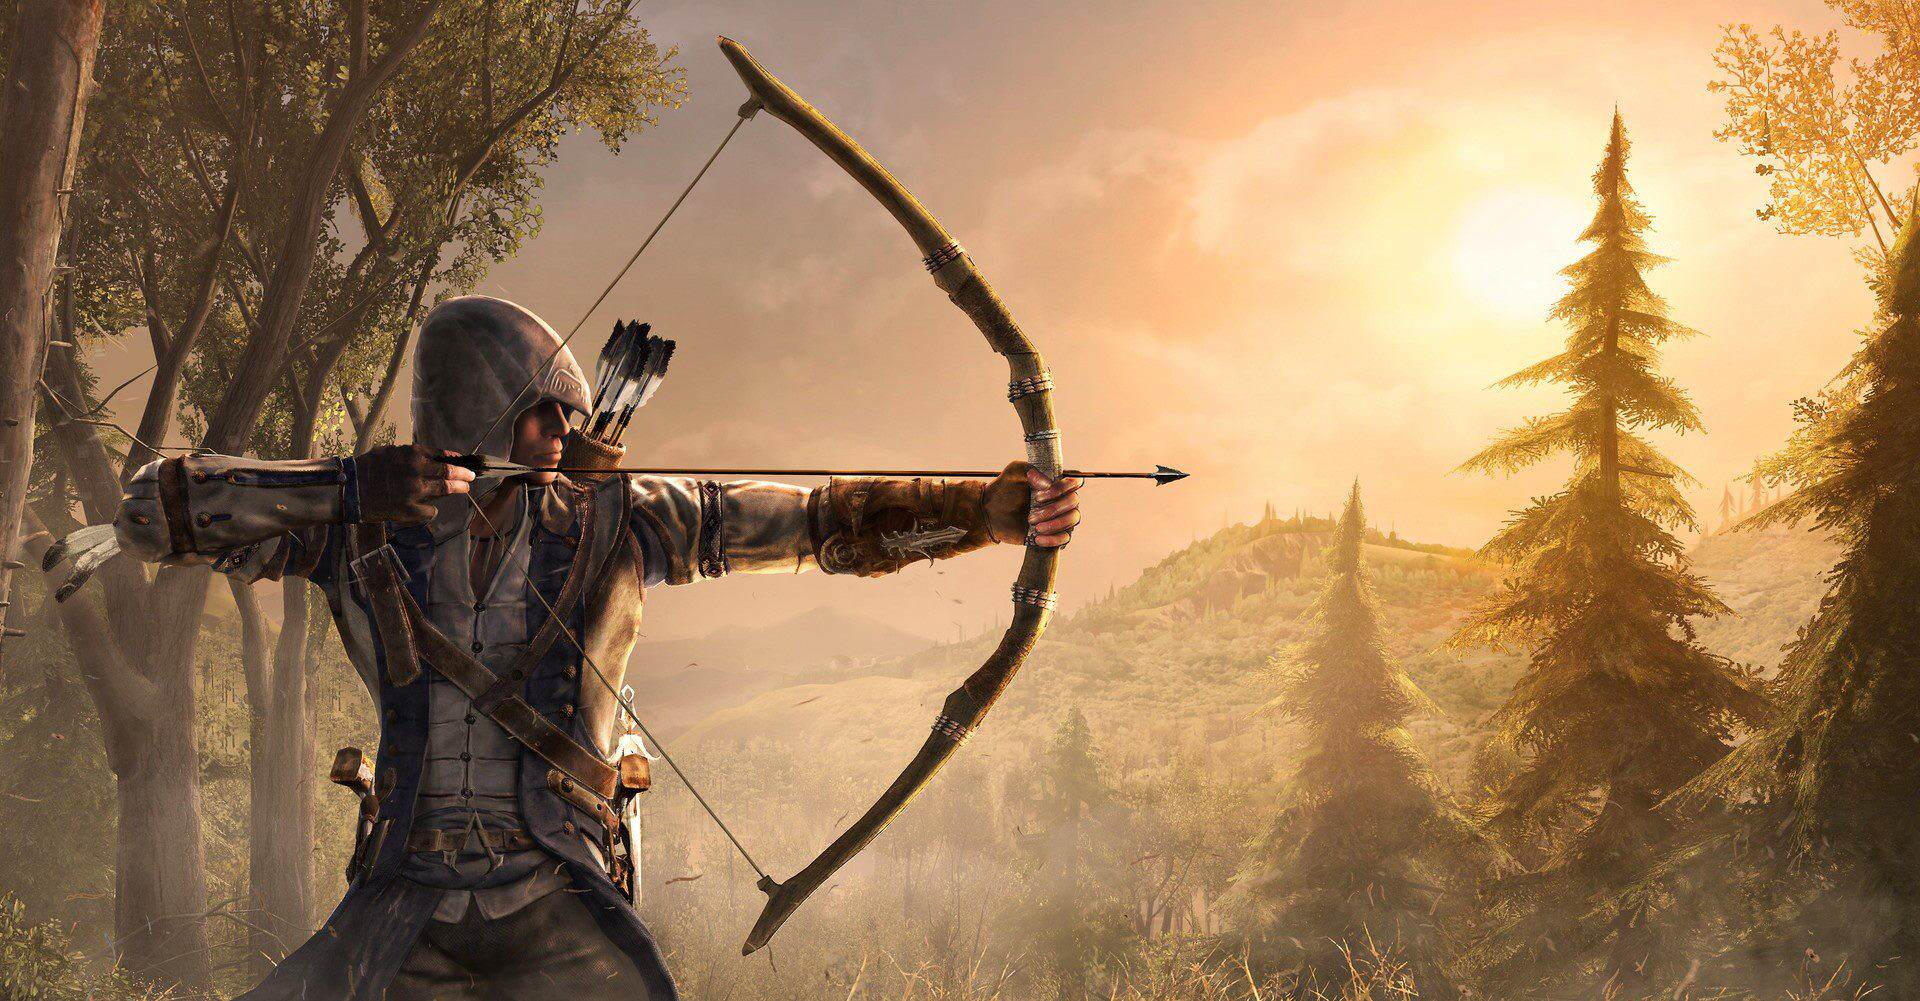 Assassins Creed 3 Studio Developing Massive New Ubisoft Project free download Assassins Creed 3 repack